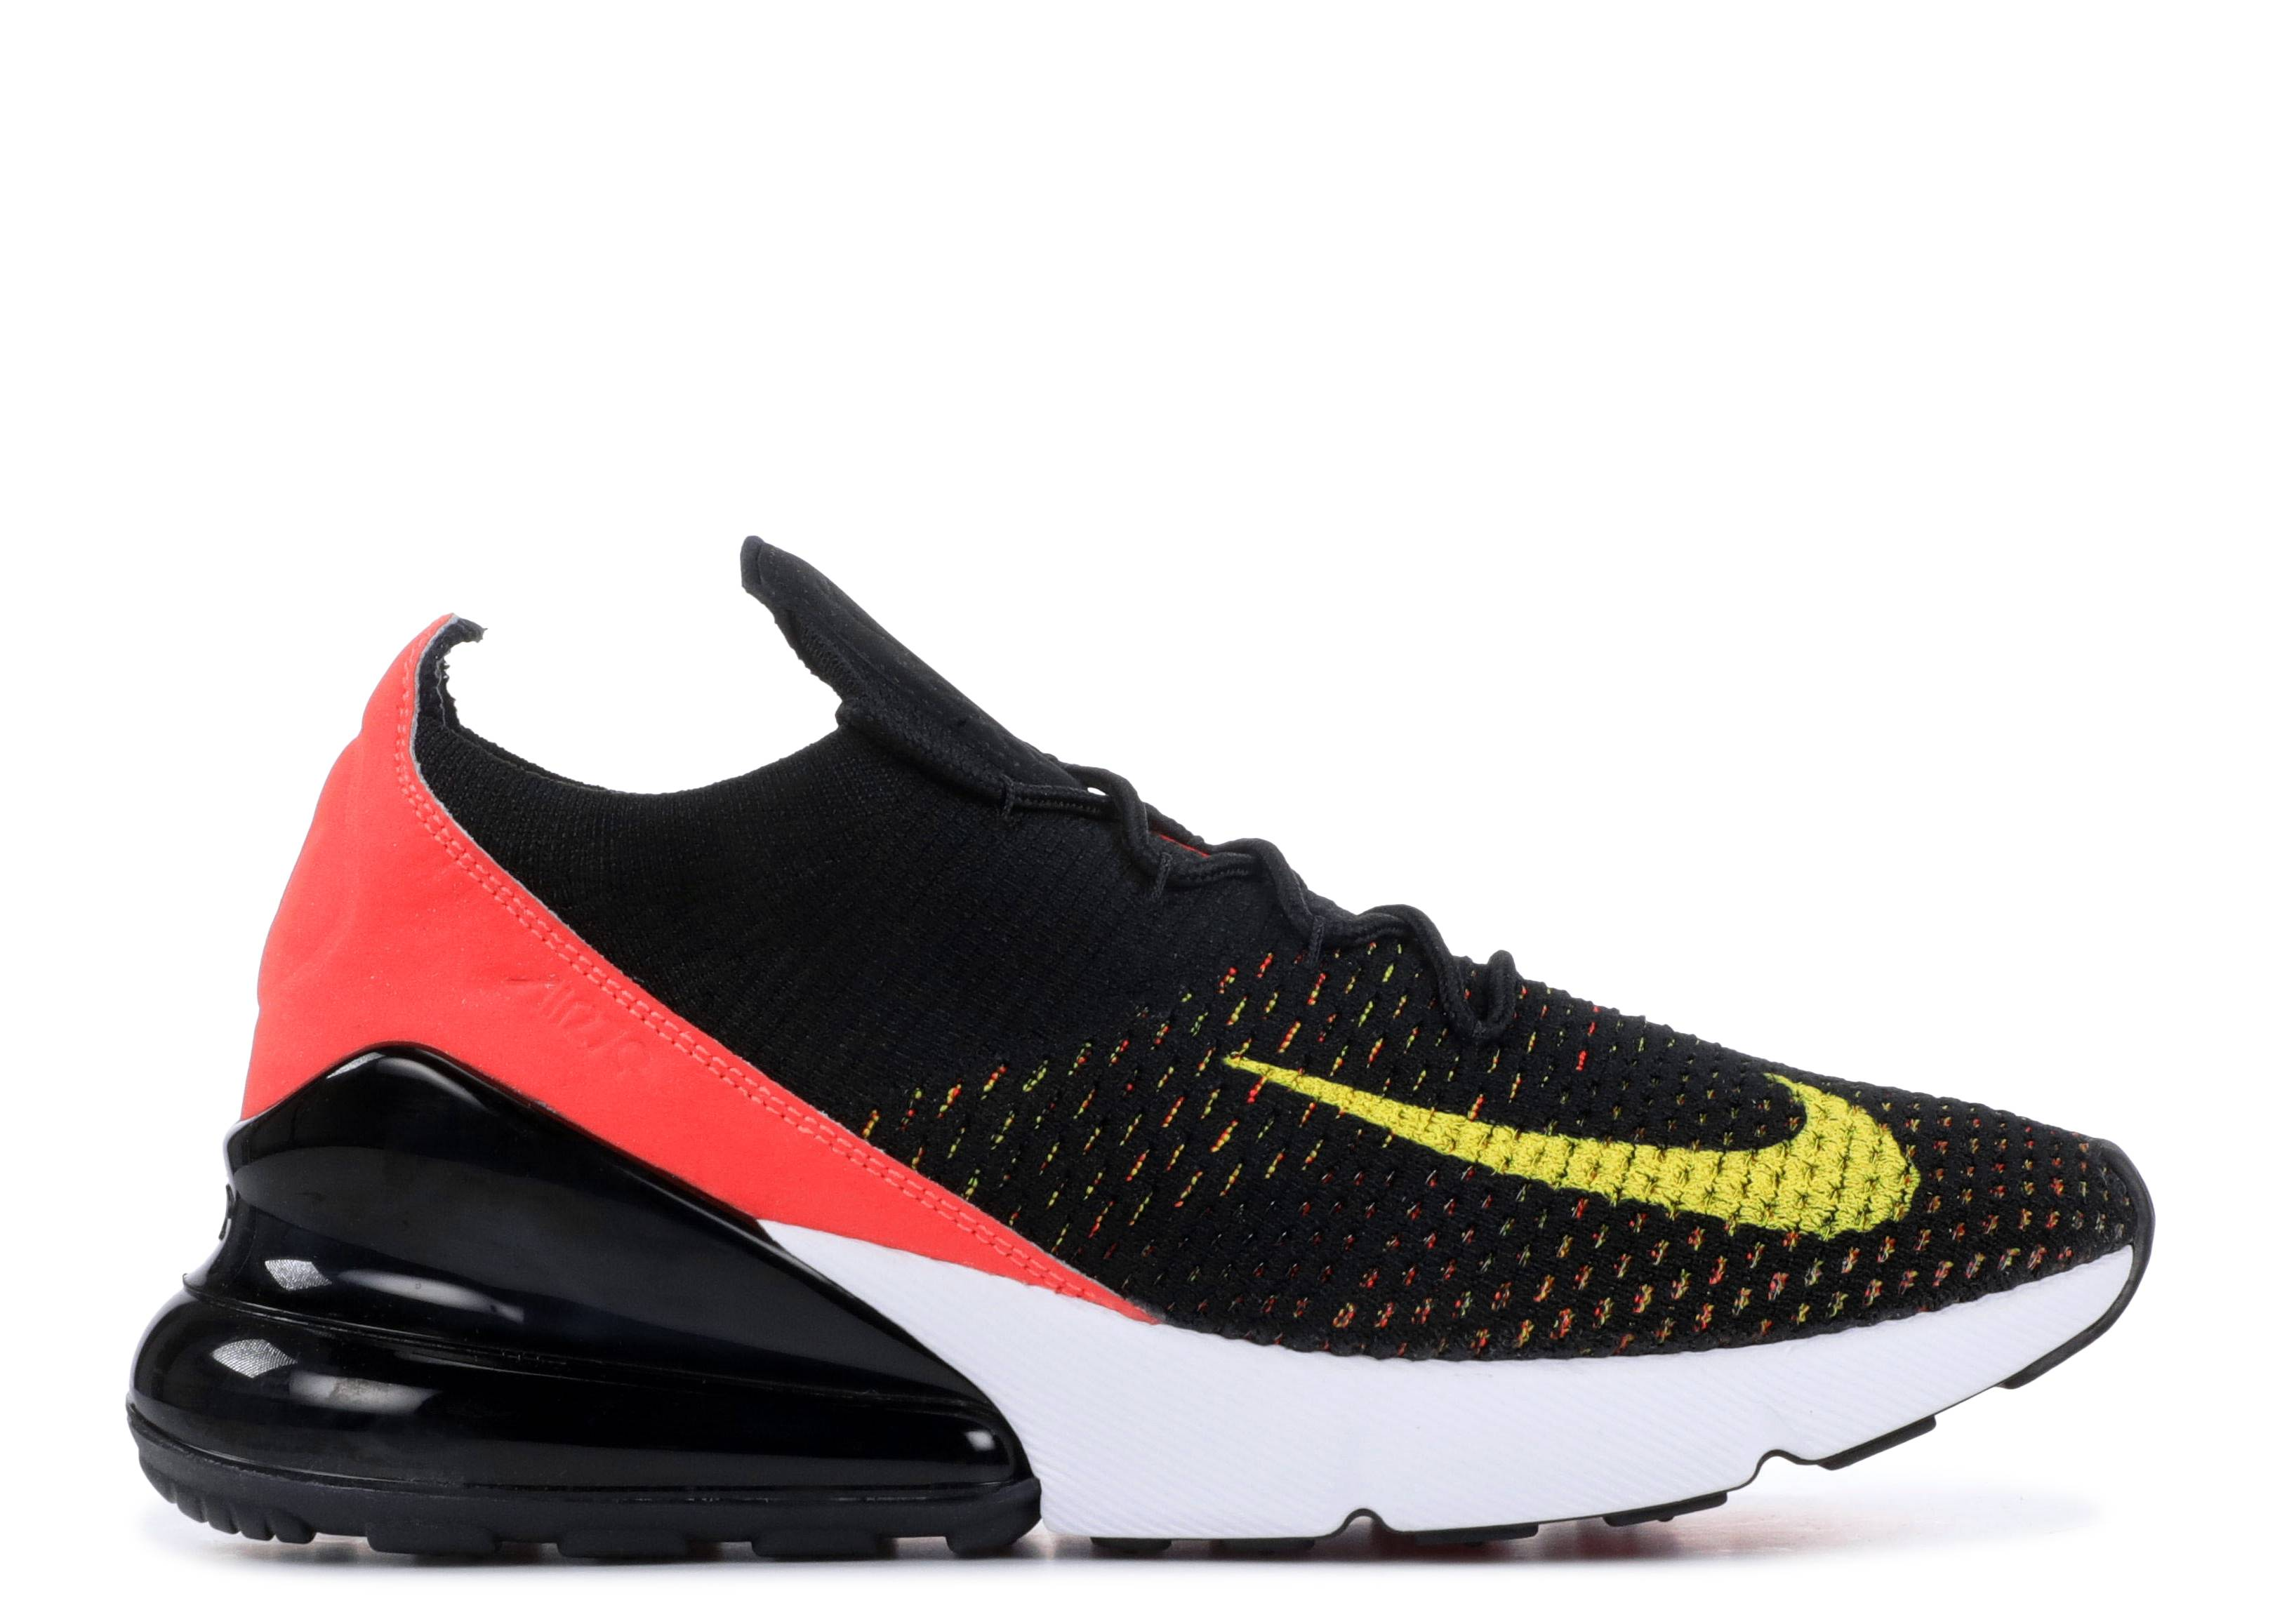 a62f4175d0 W Air Max 270 Flyknit - Nike - ah6803 003 - black/yellow strike ...